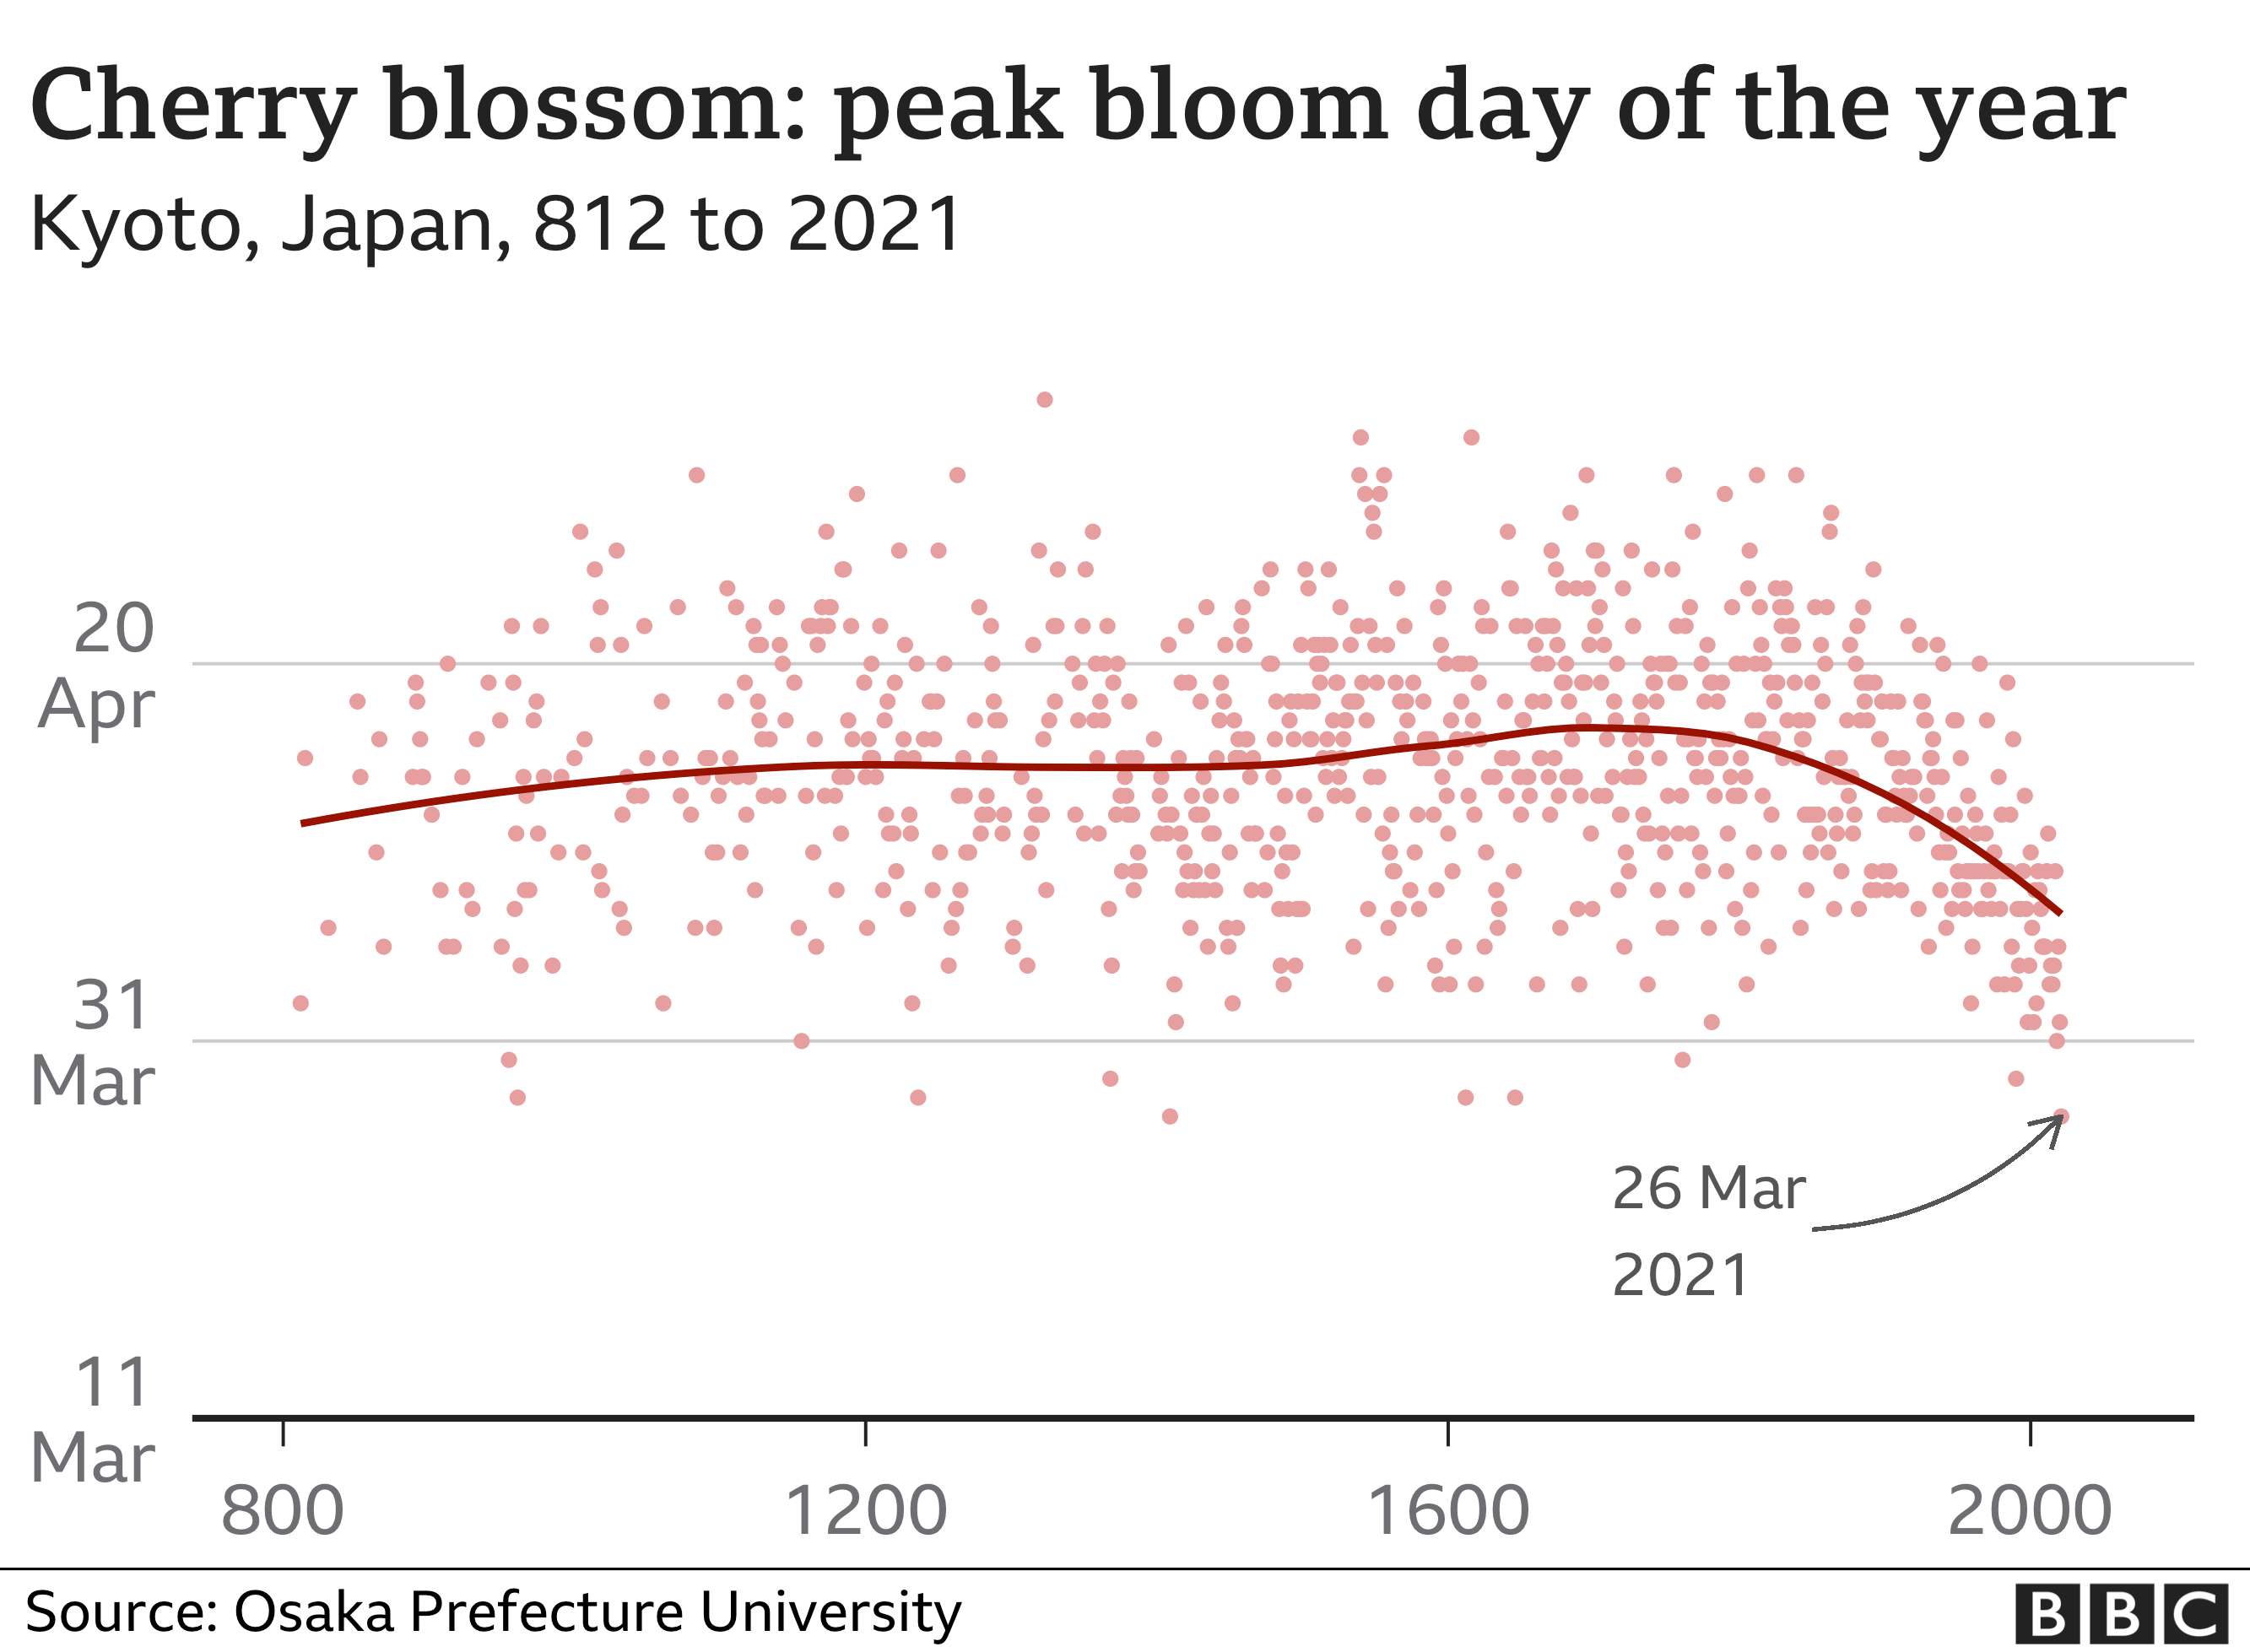 Cherry blossom timing graph